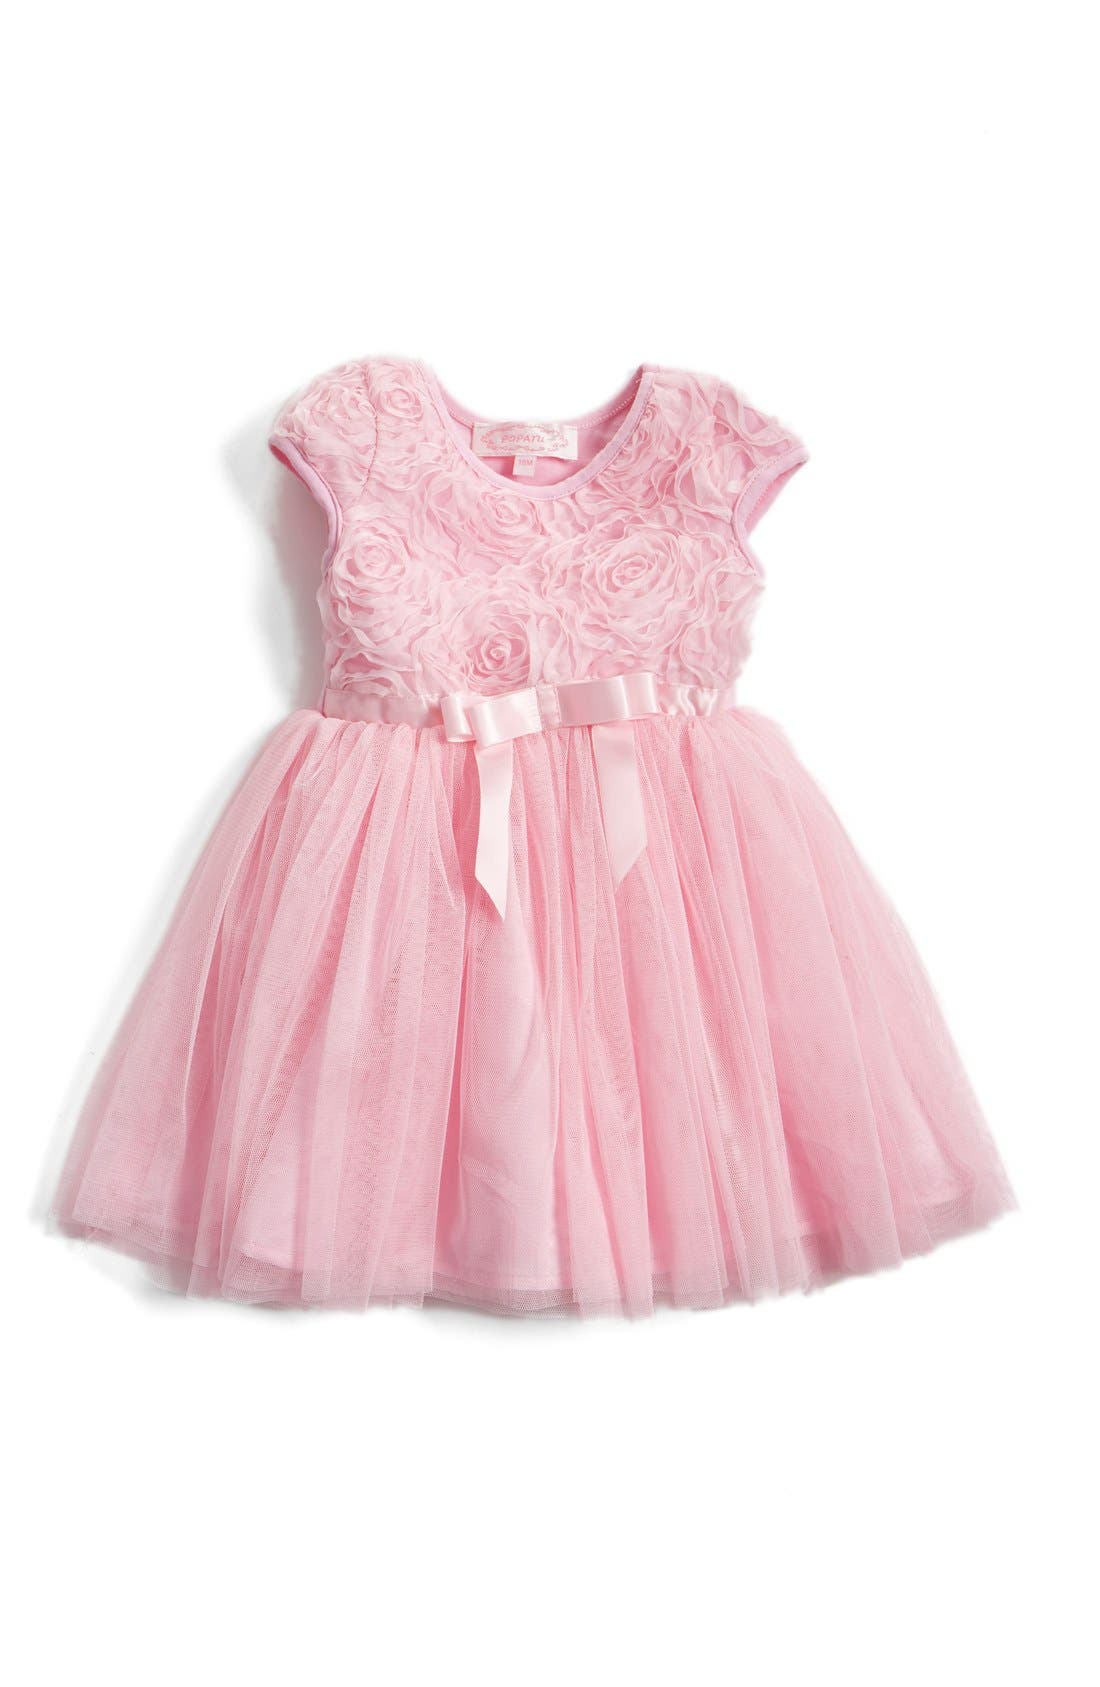 Main Image - Popatu Short Sleeve Tulle Dress (Baby Girls)